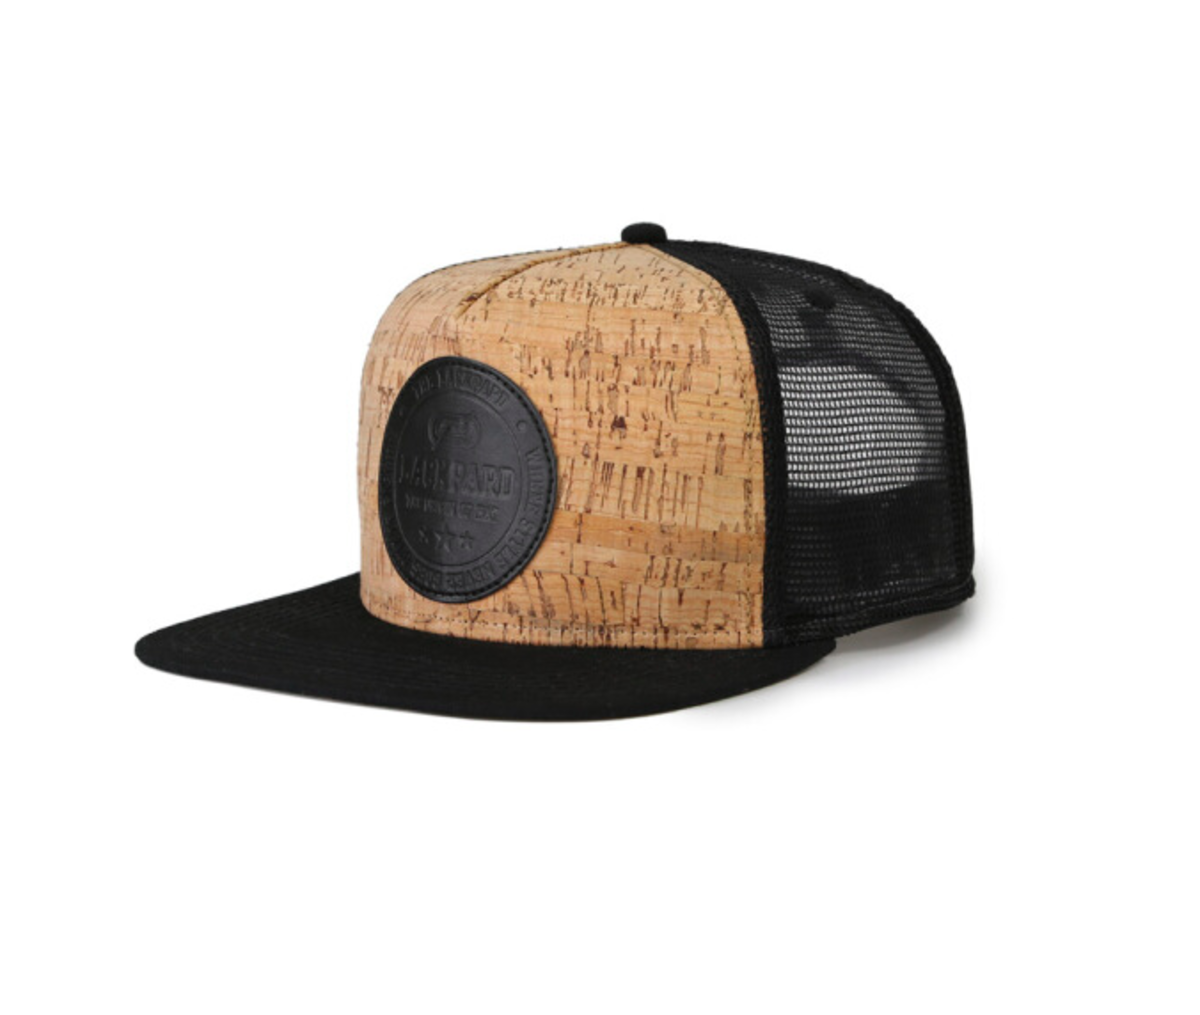 Korean Cap (Hiphop Style) (Yellow and Black) - LACKPARD